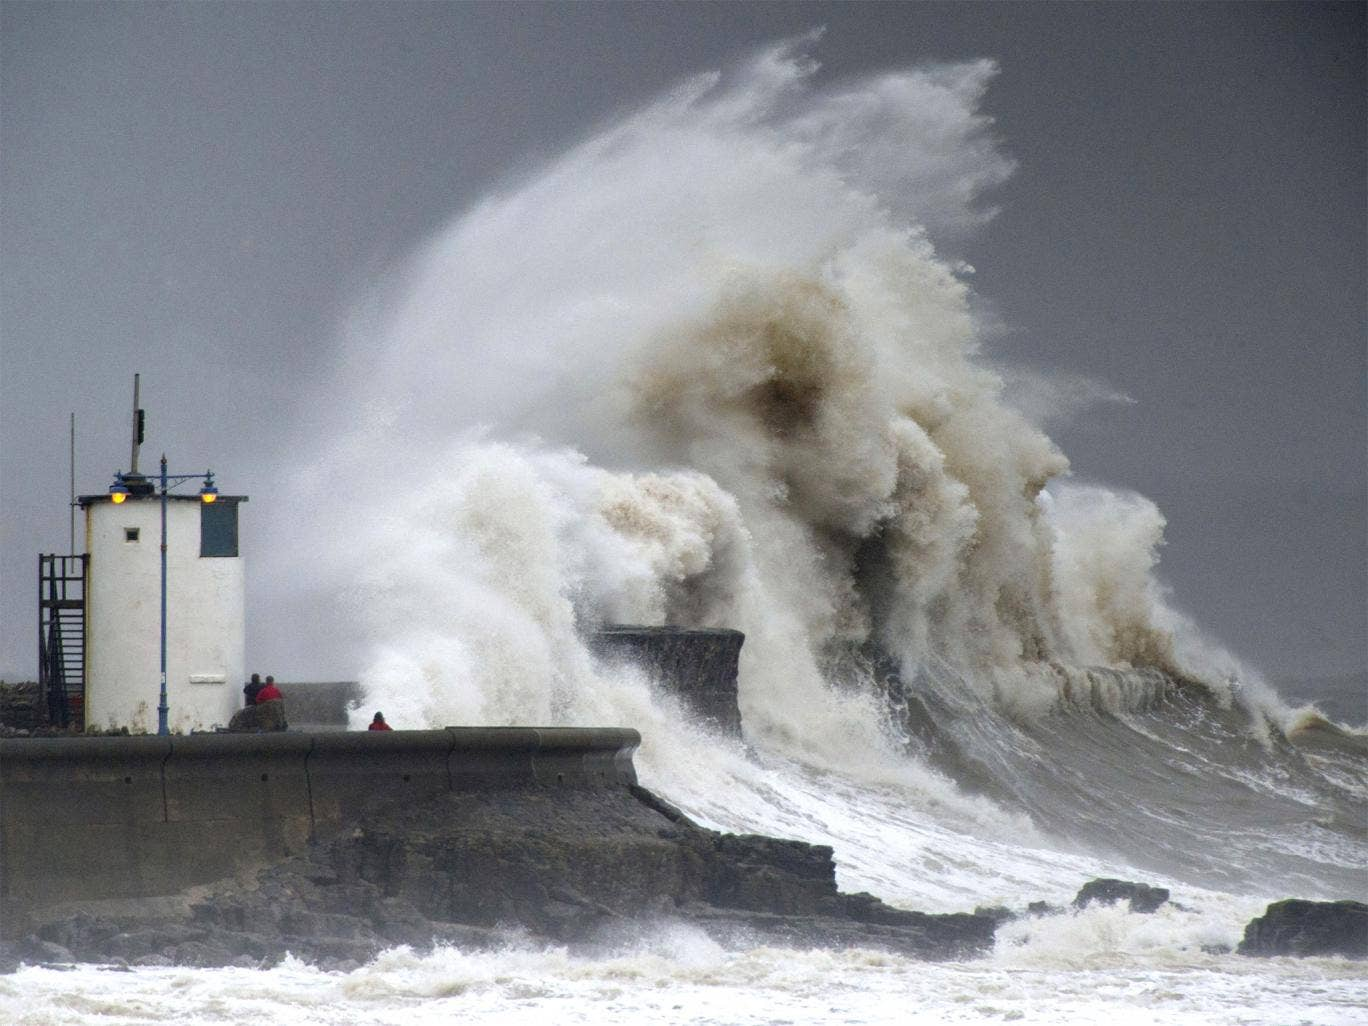 Spectators watch as waves break over the harbour wall at Porthcawl, Wales, during a high tide